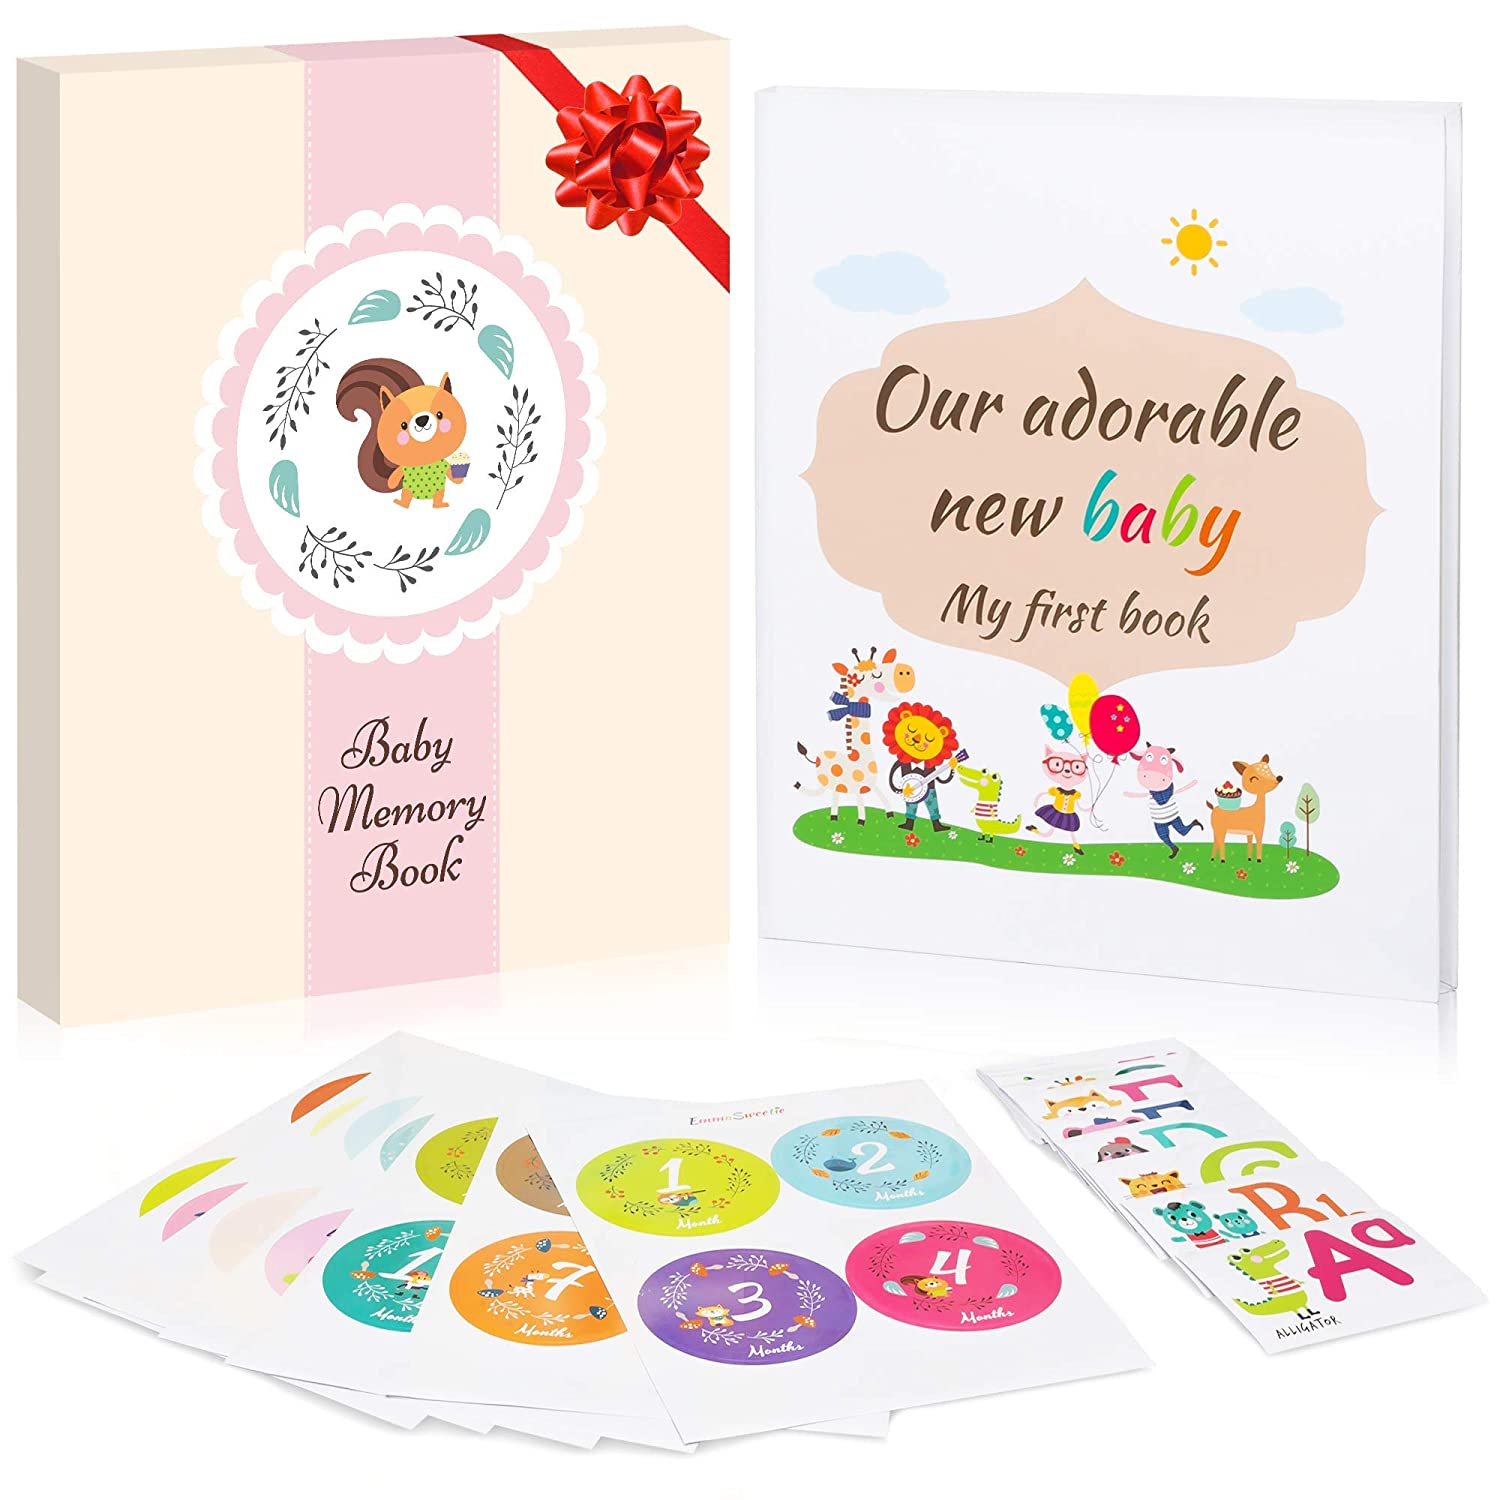 Baby Memory Book + Pink Gift Box + 28 Milestone Stickers. Capture Baby's First 5 Years of Milestones, Memories, Moments, Holidays, and Firsts in This 64-Page Journal Scrapbook by EmmaSweetie